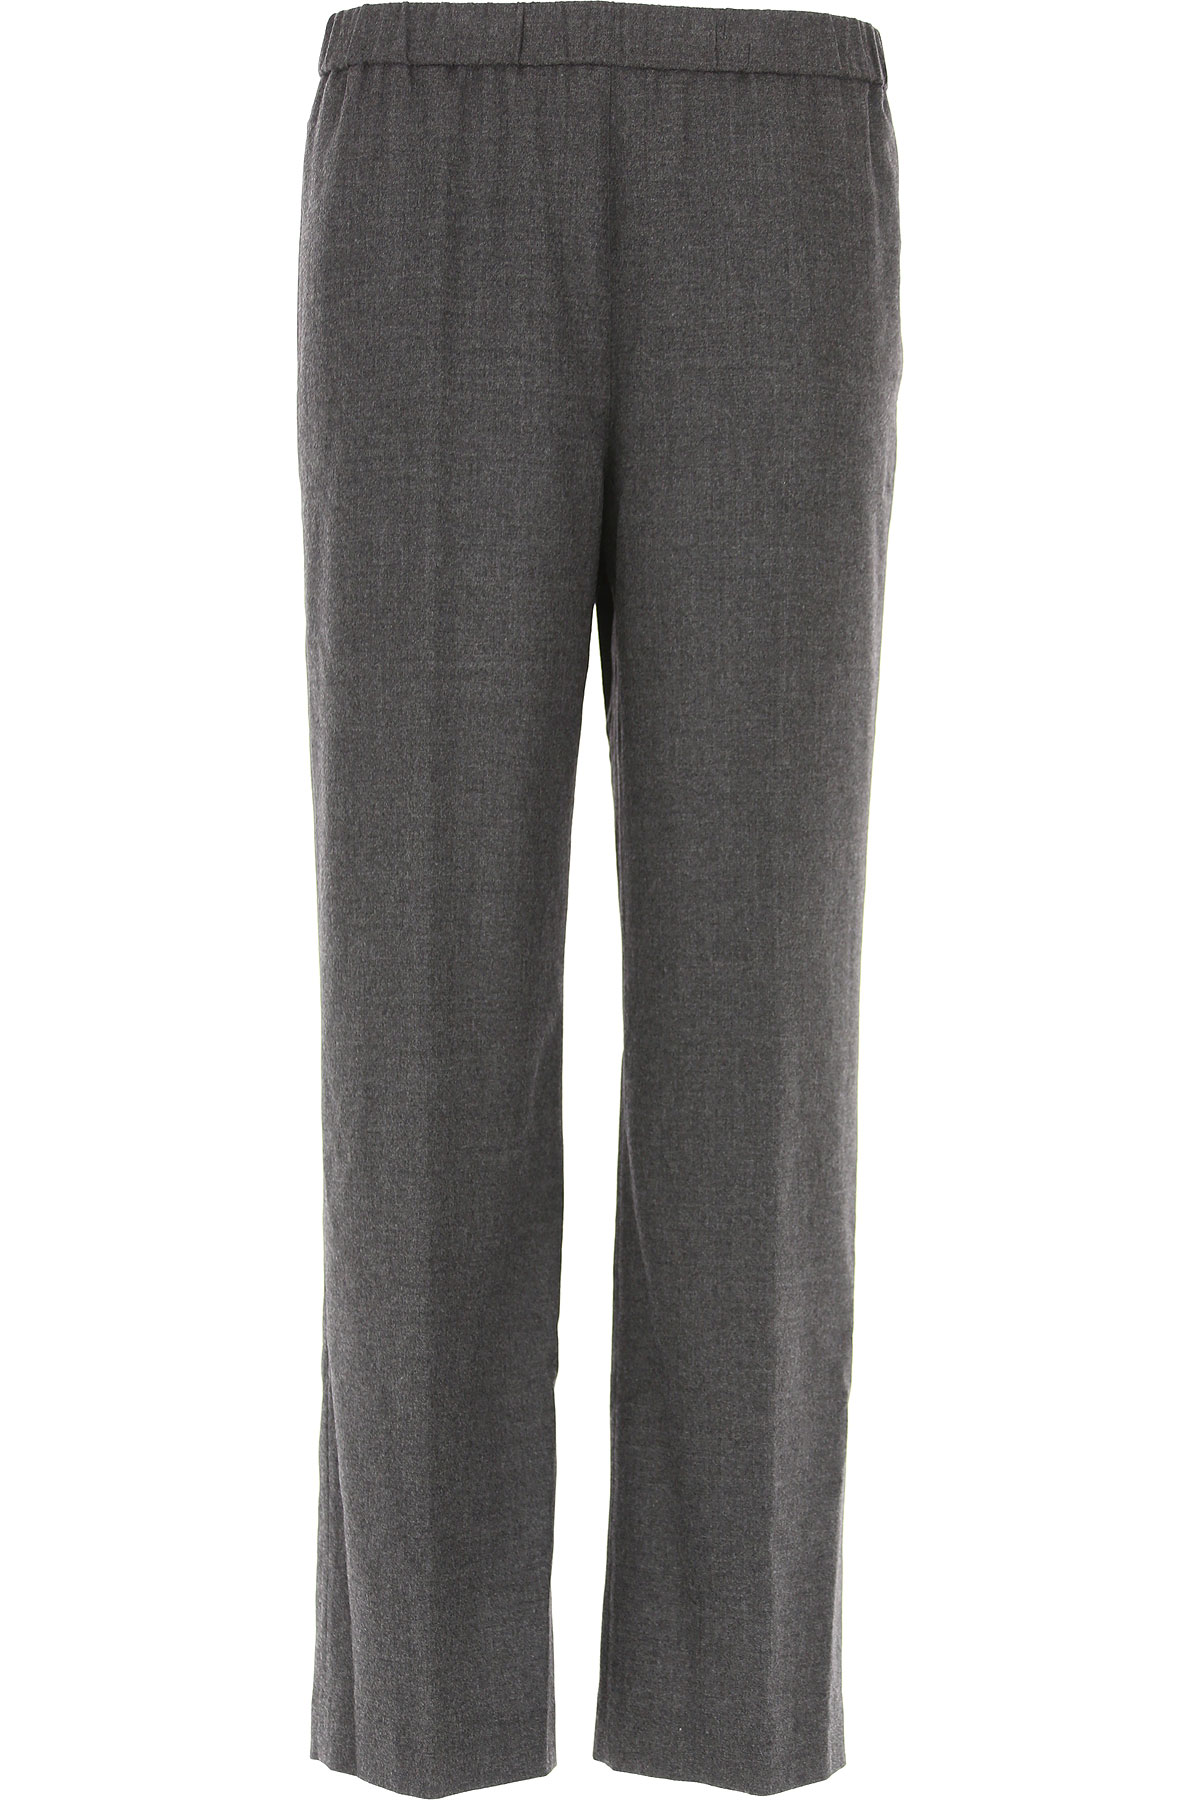 Image of Aspesi Pants for Women, antracite, Wool, 2017, 28 32